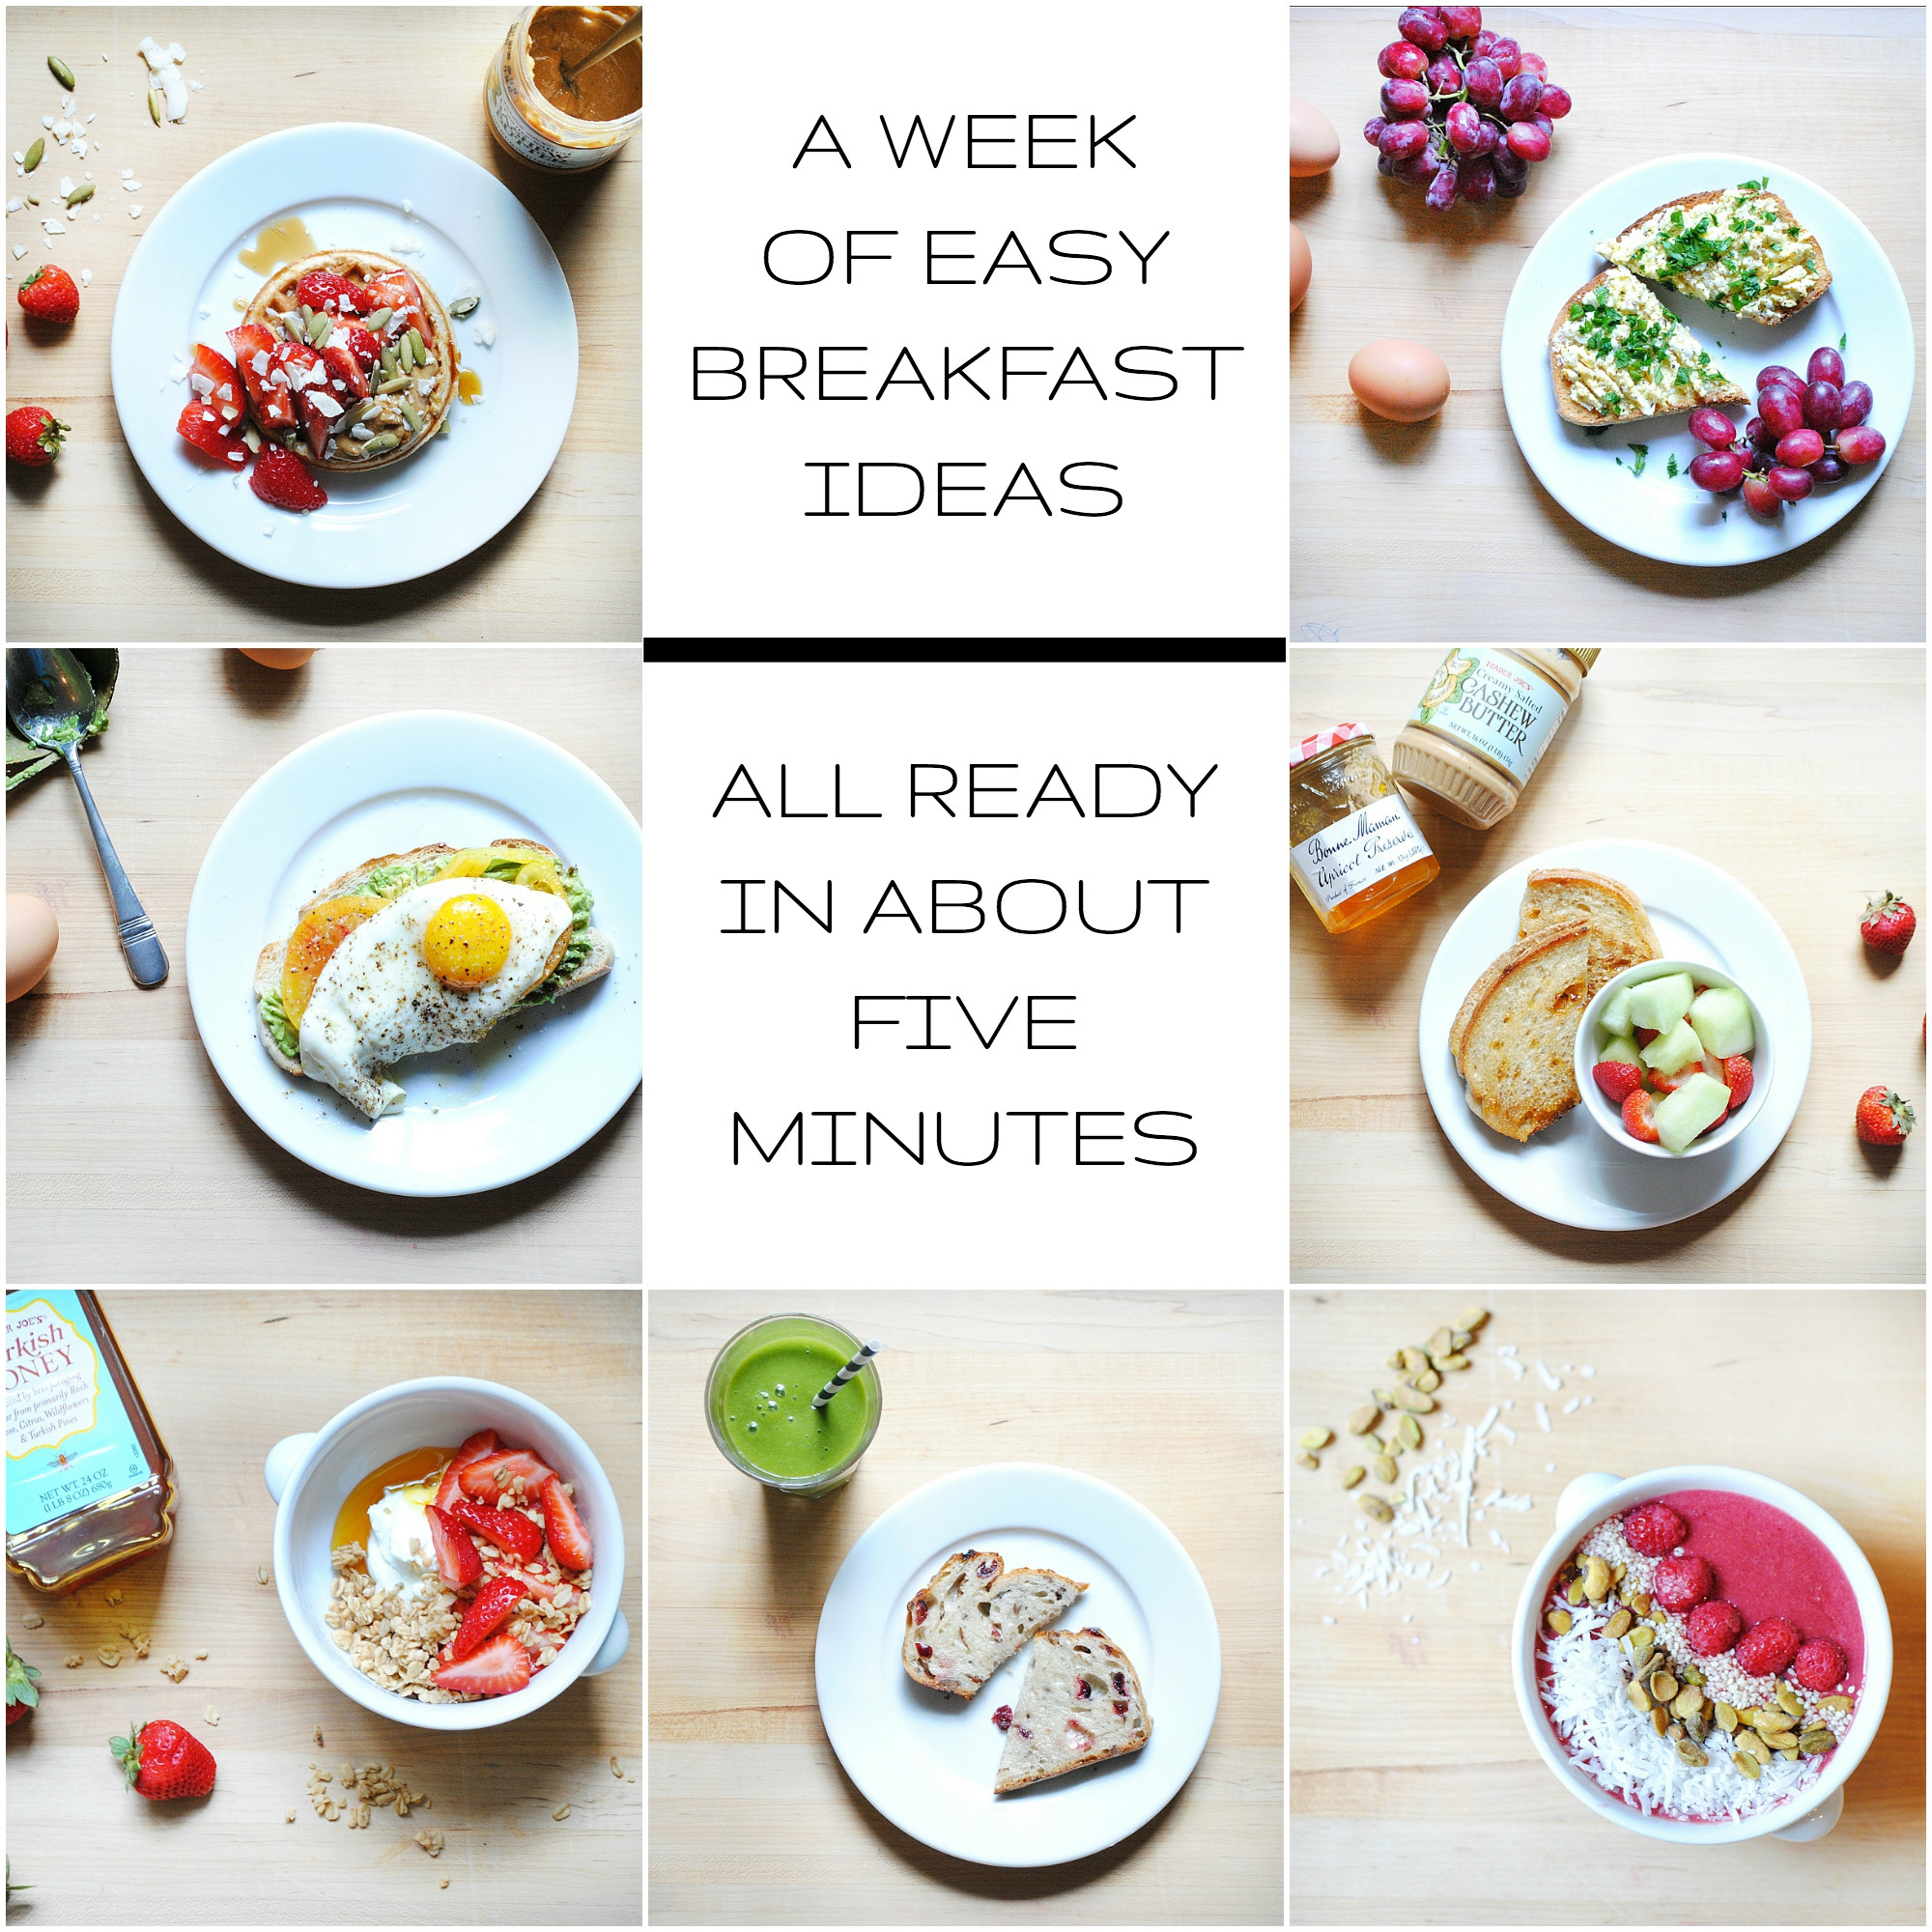 Easy Healthy Breakfast Ideas  A Week of Healthy Easy Breakfast Ideas All Ready in